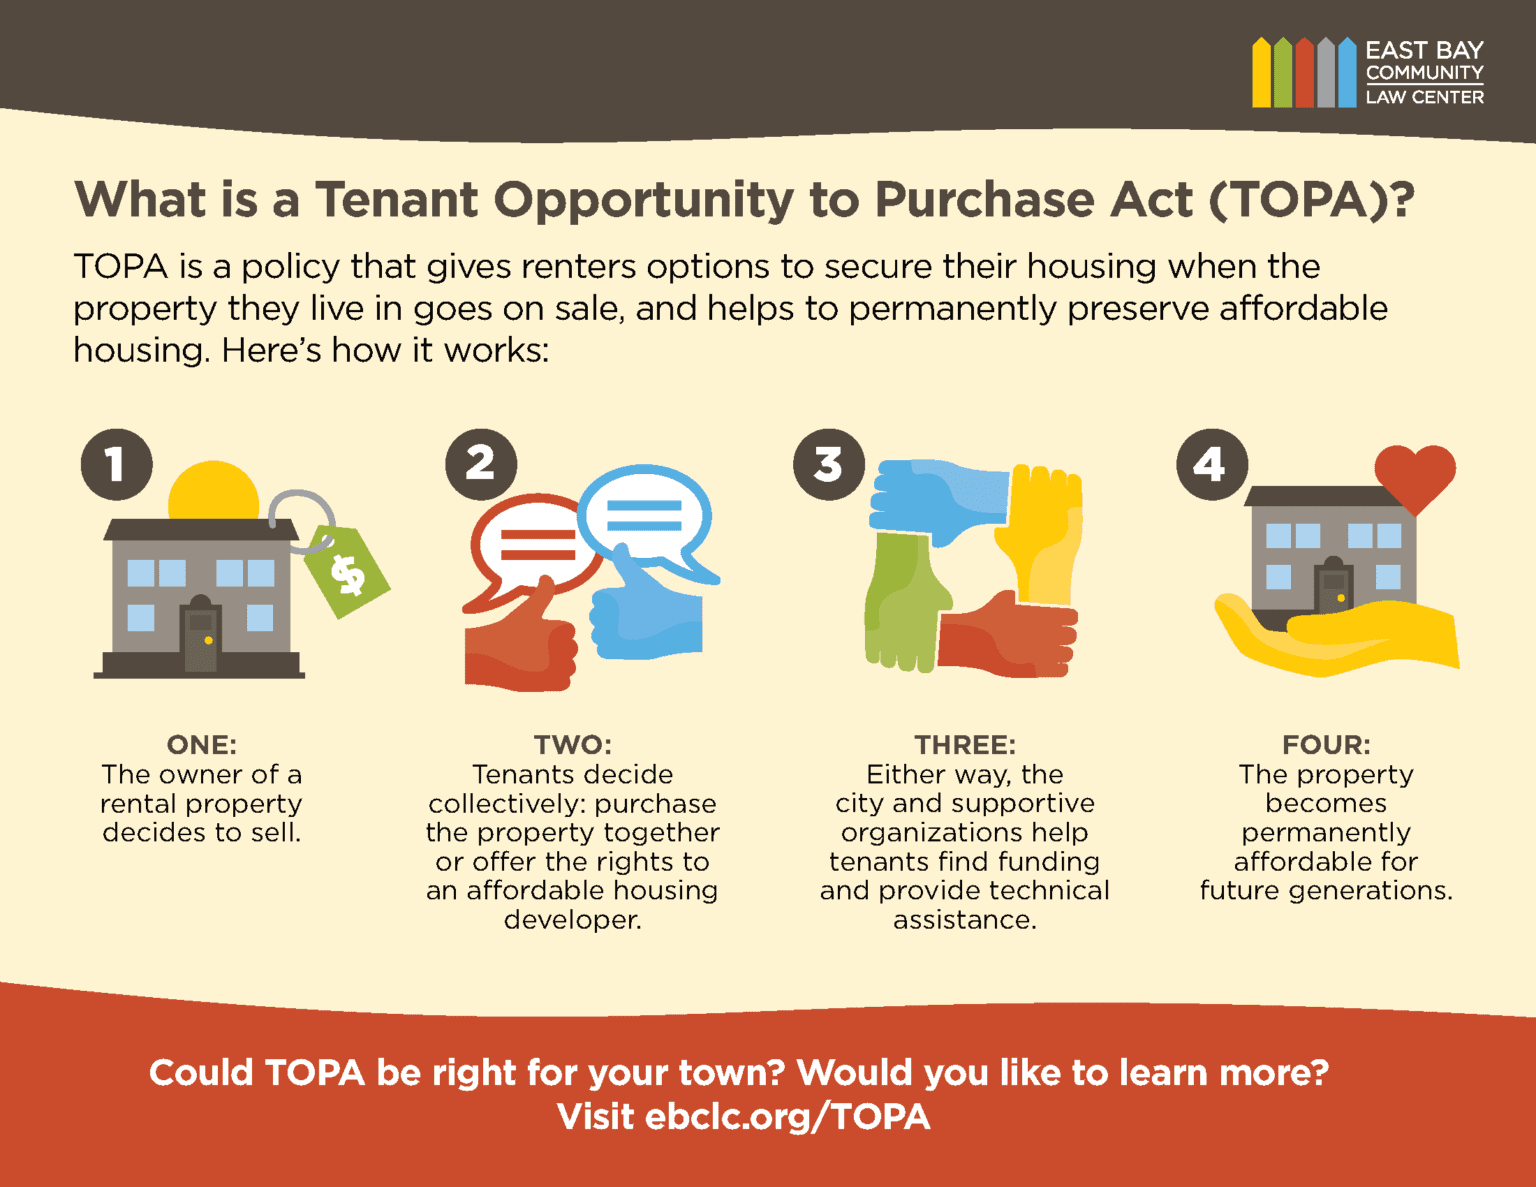 Tenant Opportunity to Purchase Act (TOPA)